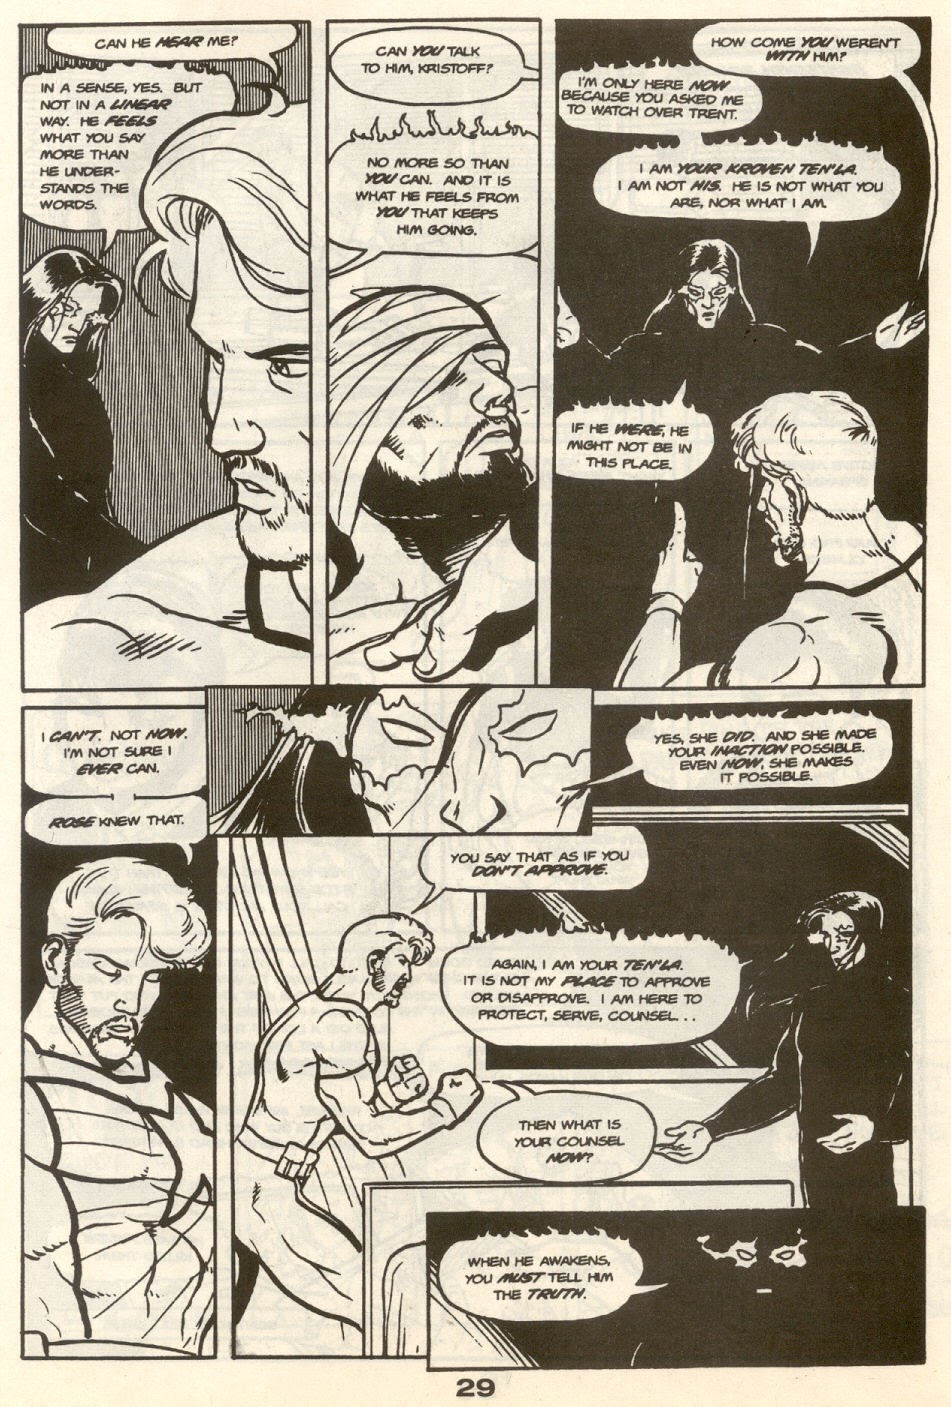 Gay Comix (Gay Comics) issue 24 - Page 32